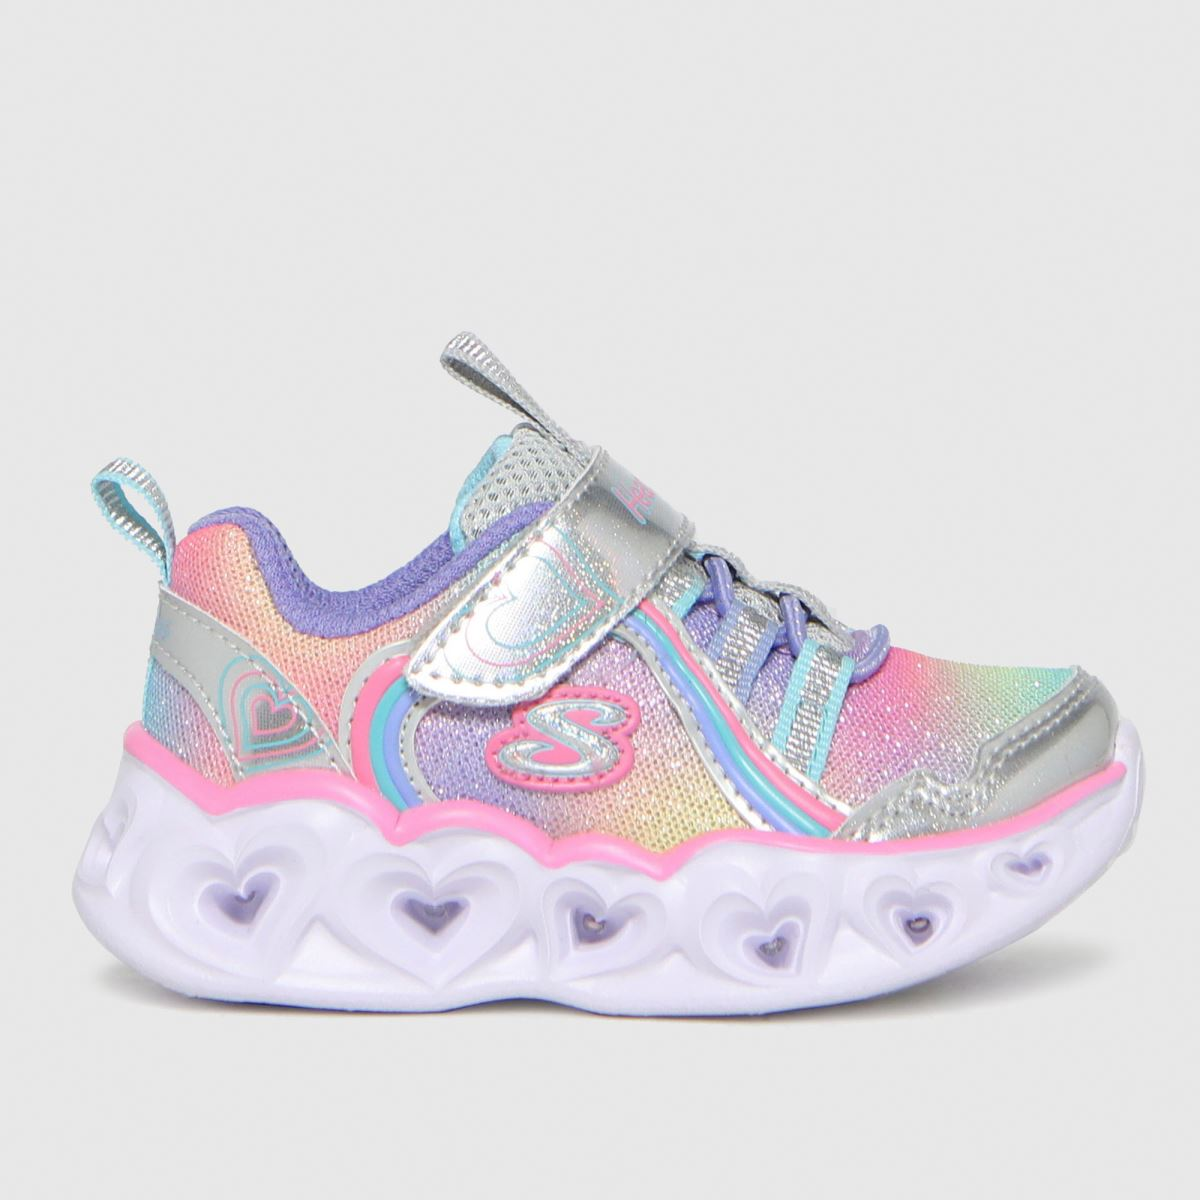 SKECHERS Silver Heart Lights Rainbow Luxe Trainers Toddler